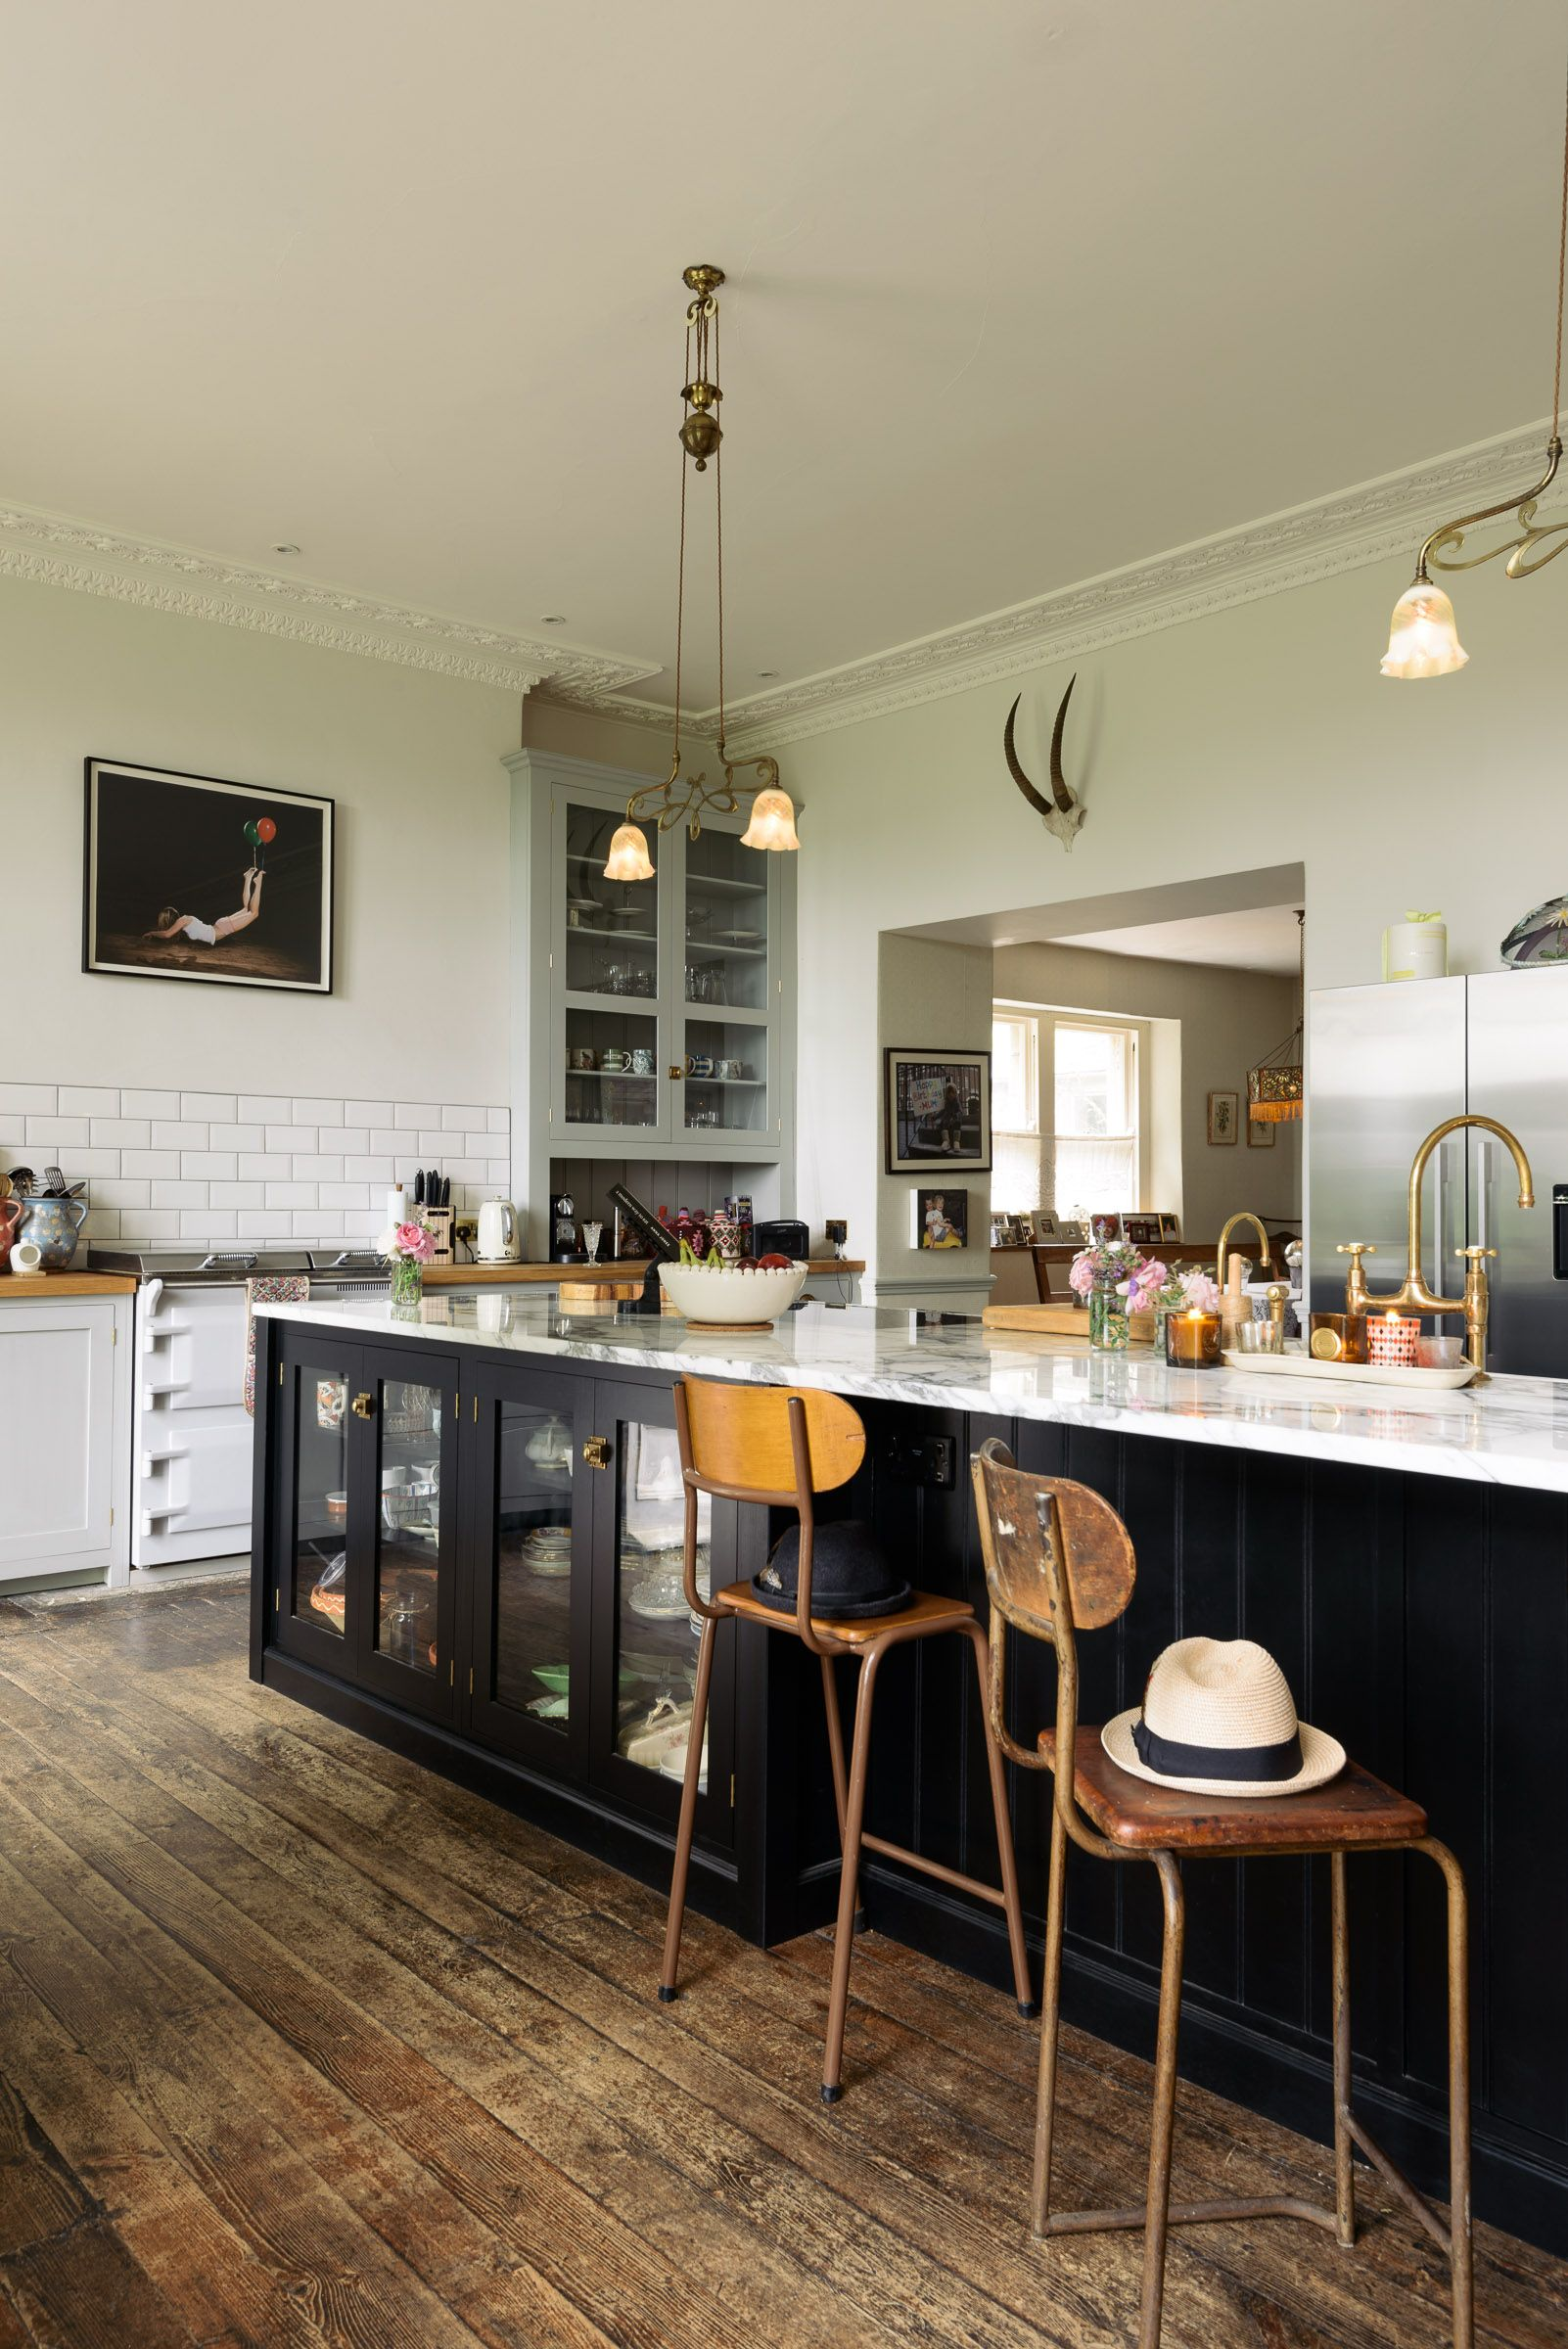 Mikes Country Kitchen Part - 41: Charming Vintage Details In This English Country Kitchen By Pearl Lowe With  Bespoke Shaker Style Cabinetry